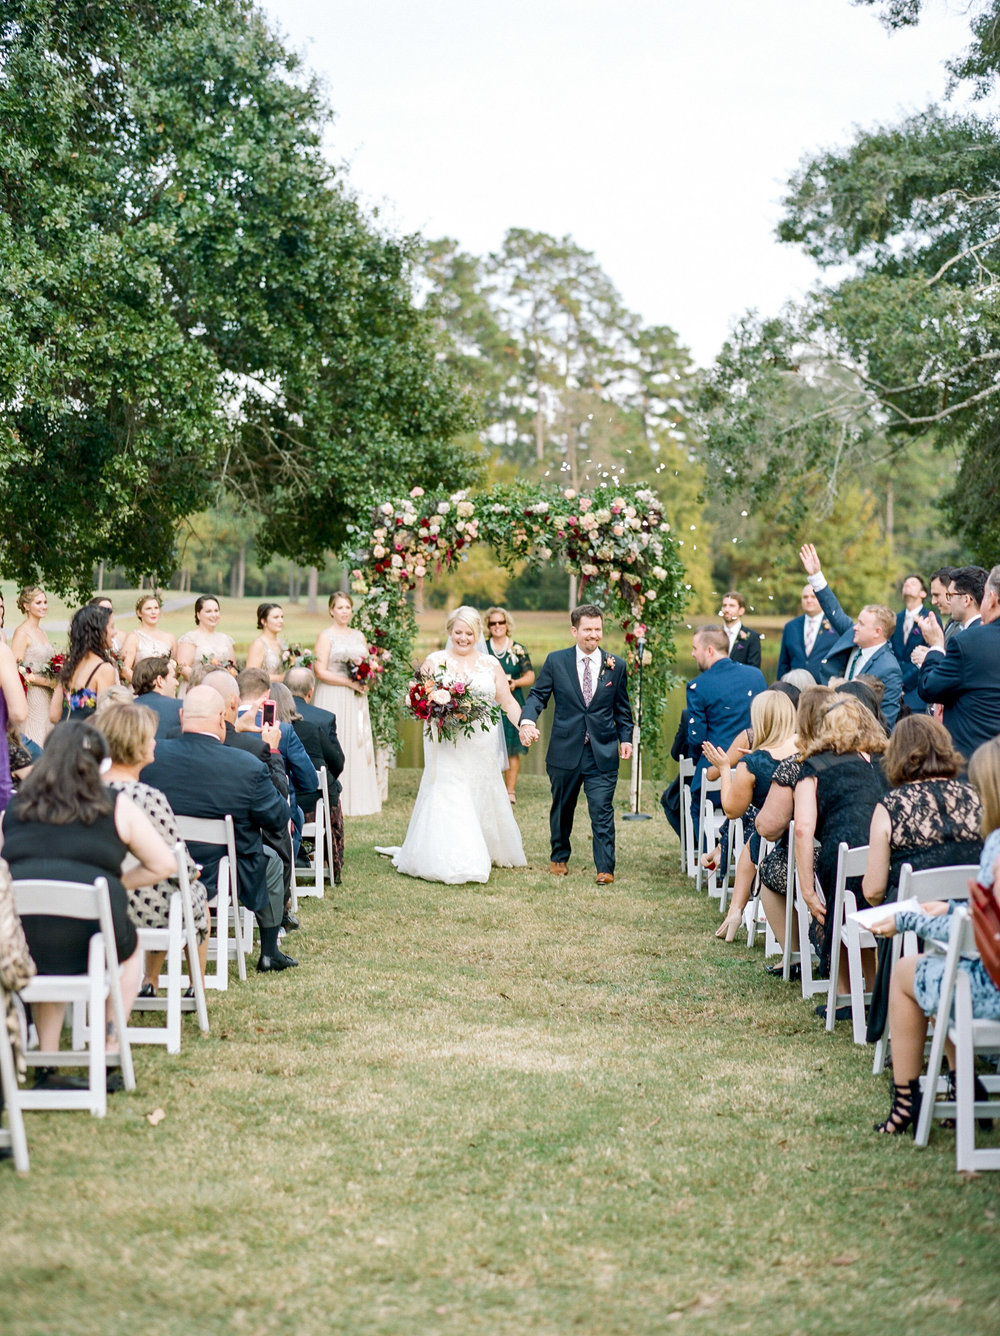 Houston-Wedding-Photographer-Fine-Art-Film-Destination-Style-Me-Pretty-Austin-Dallas-New-Orleans-Dana-Fernandez-Photography-The+Woodlands-Country-Club-22.jpg